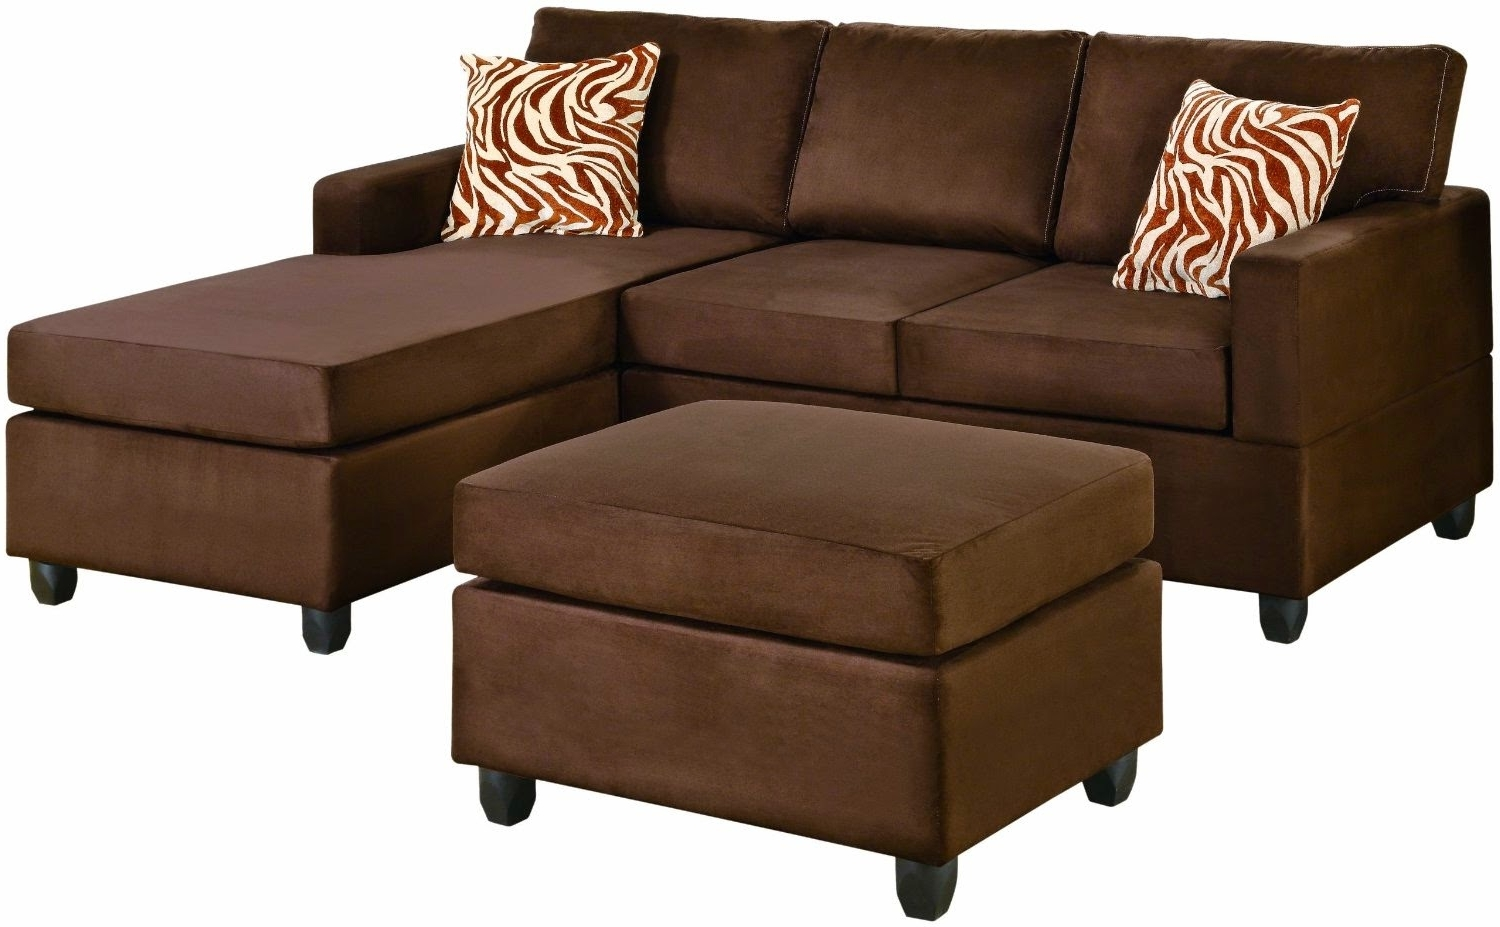 Tiny Sofas Within Famous Loveseat Sectional Tiny Sectional Sofa Sectional Couch Ikea (View 19 of 20)